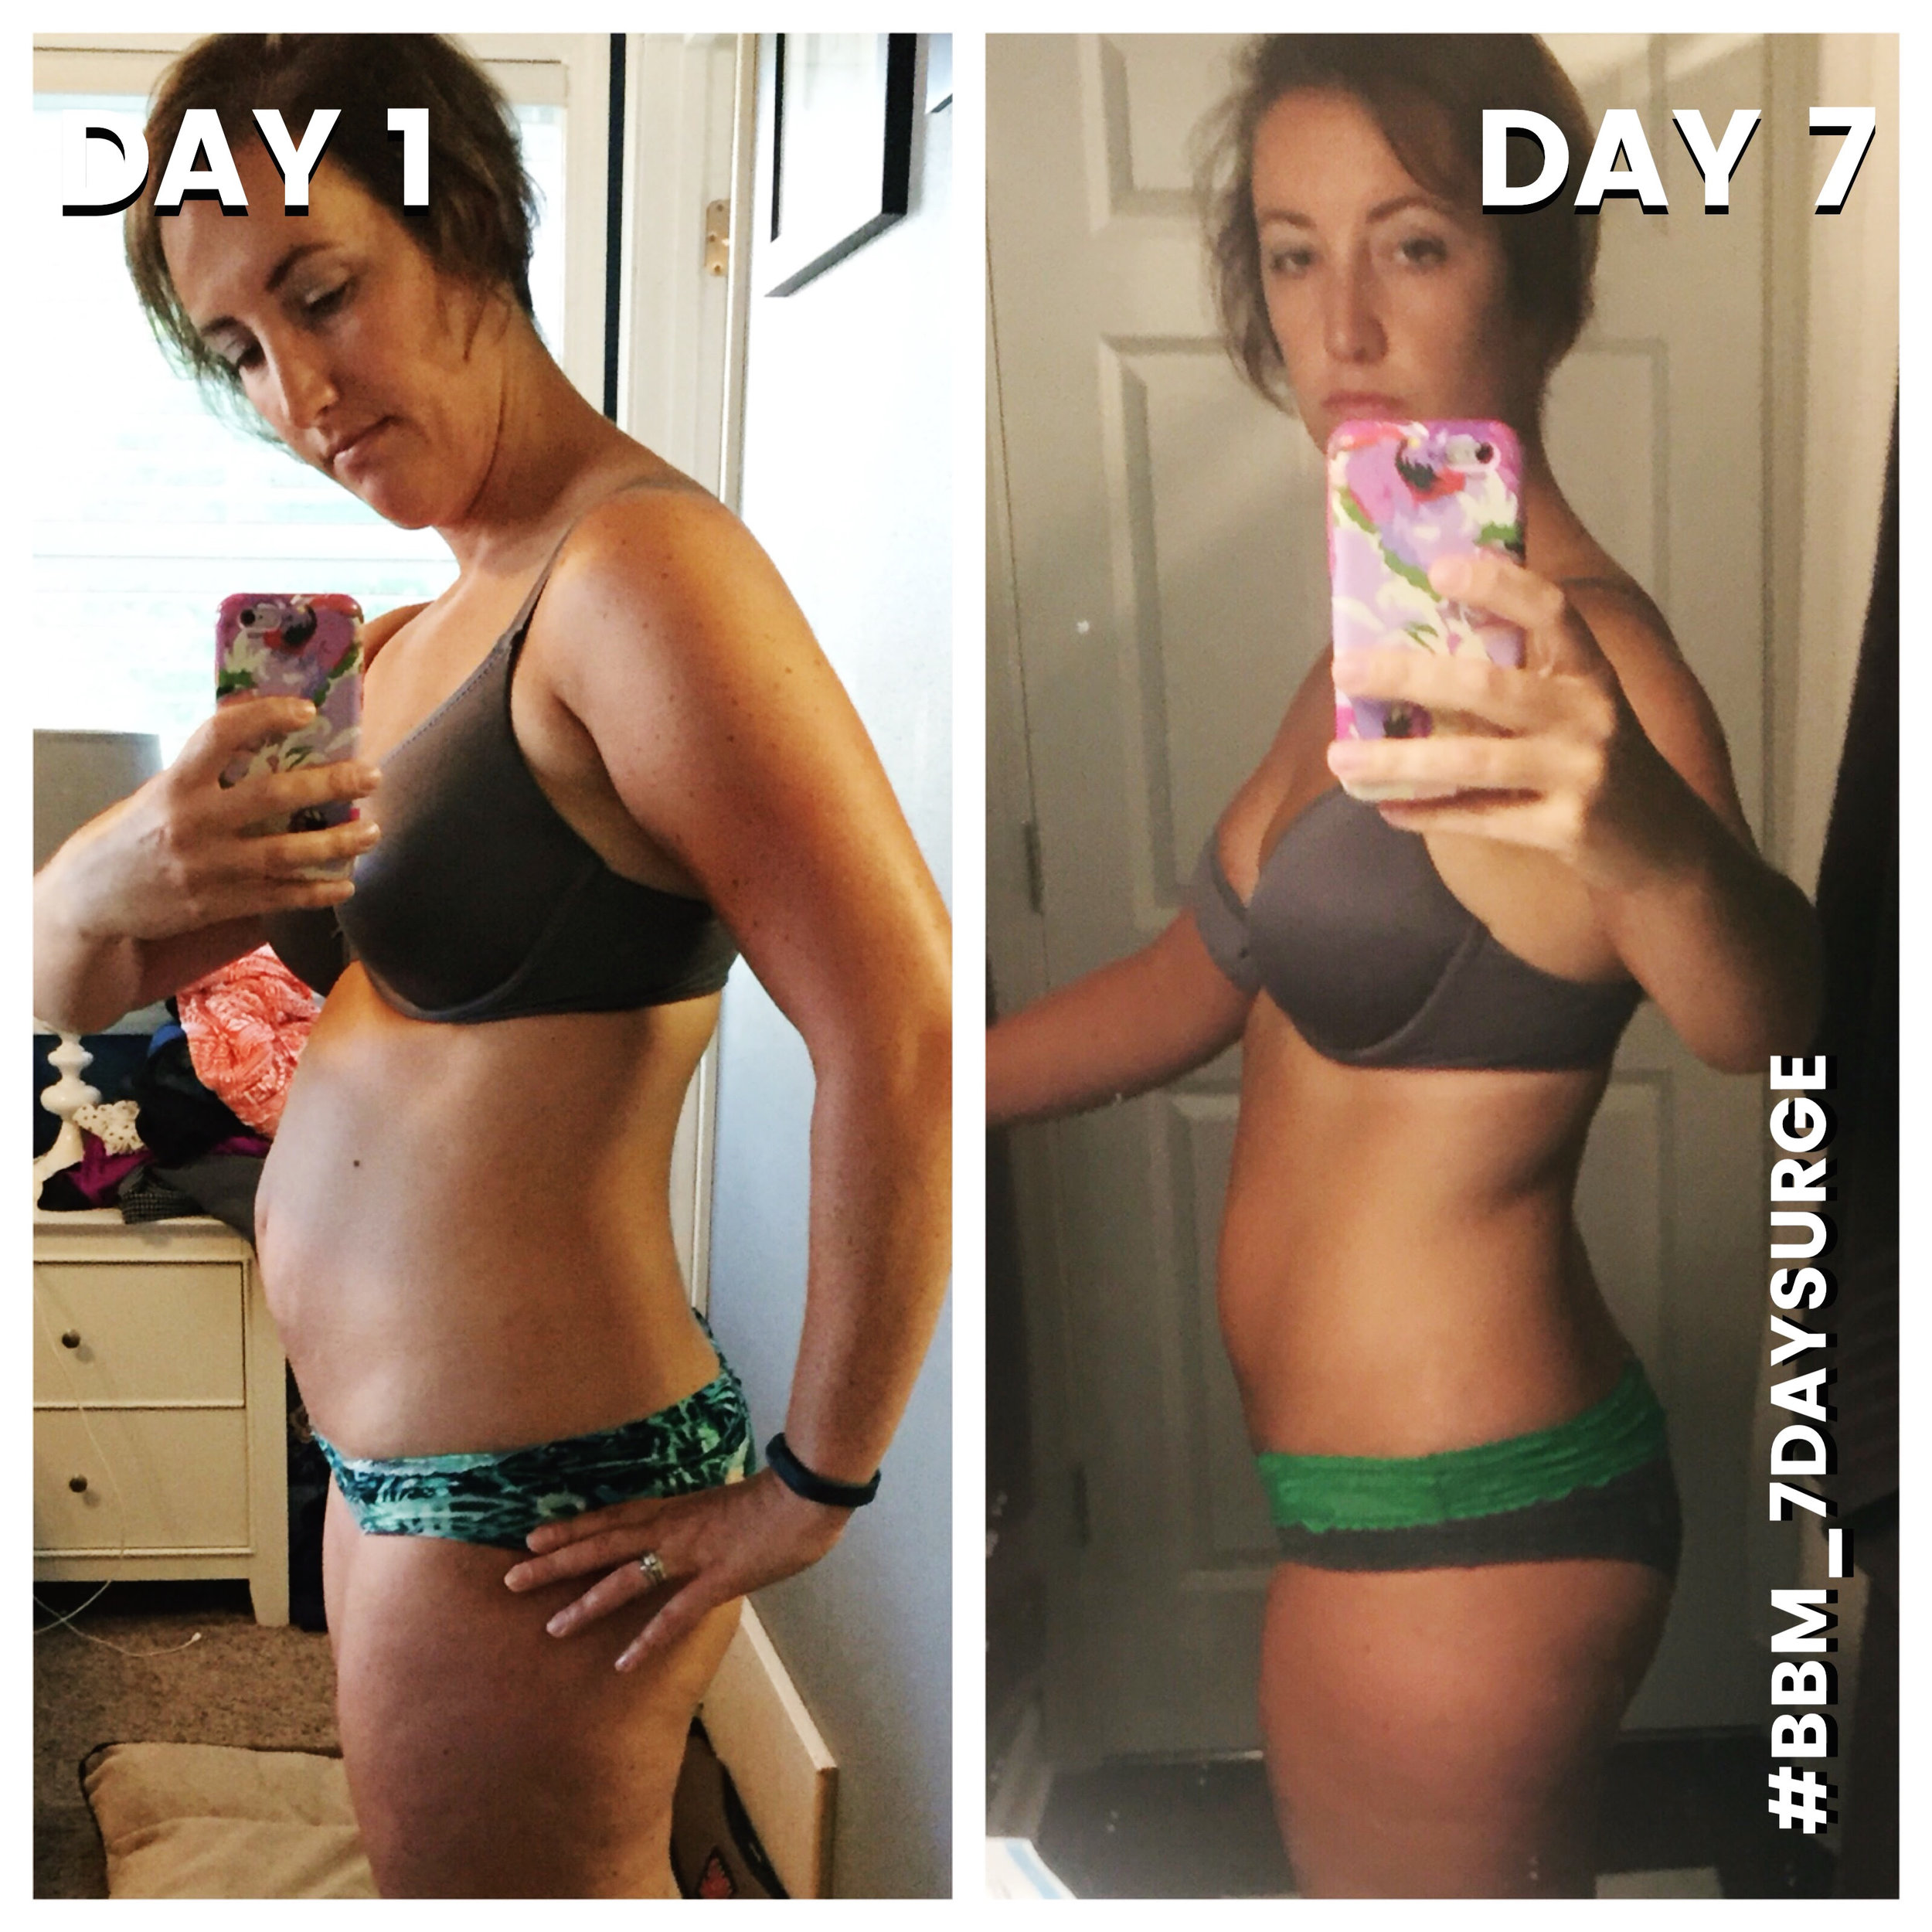 """Liz LOST 8 POUNDS on the 7 DAY SURGE!   I've been following Briana for 3 years. I finally pulled the trigger on the surge when I realized that when I stopped nursing my 1 year old I couldn't get the weight off. Boy did this work! I followed the meal plan and exercise 100%. It was hard but I got it done. I've learned some great recipes and have been able to keep up the majority of the nutrition even a week later. I lost 8 pounds and 6.25"""" during the surge! I look forward to following you and seeing the other amazing things you come up with for or community! Thank you Briana!"""